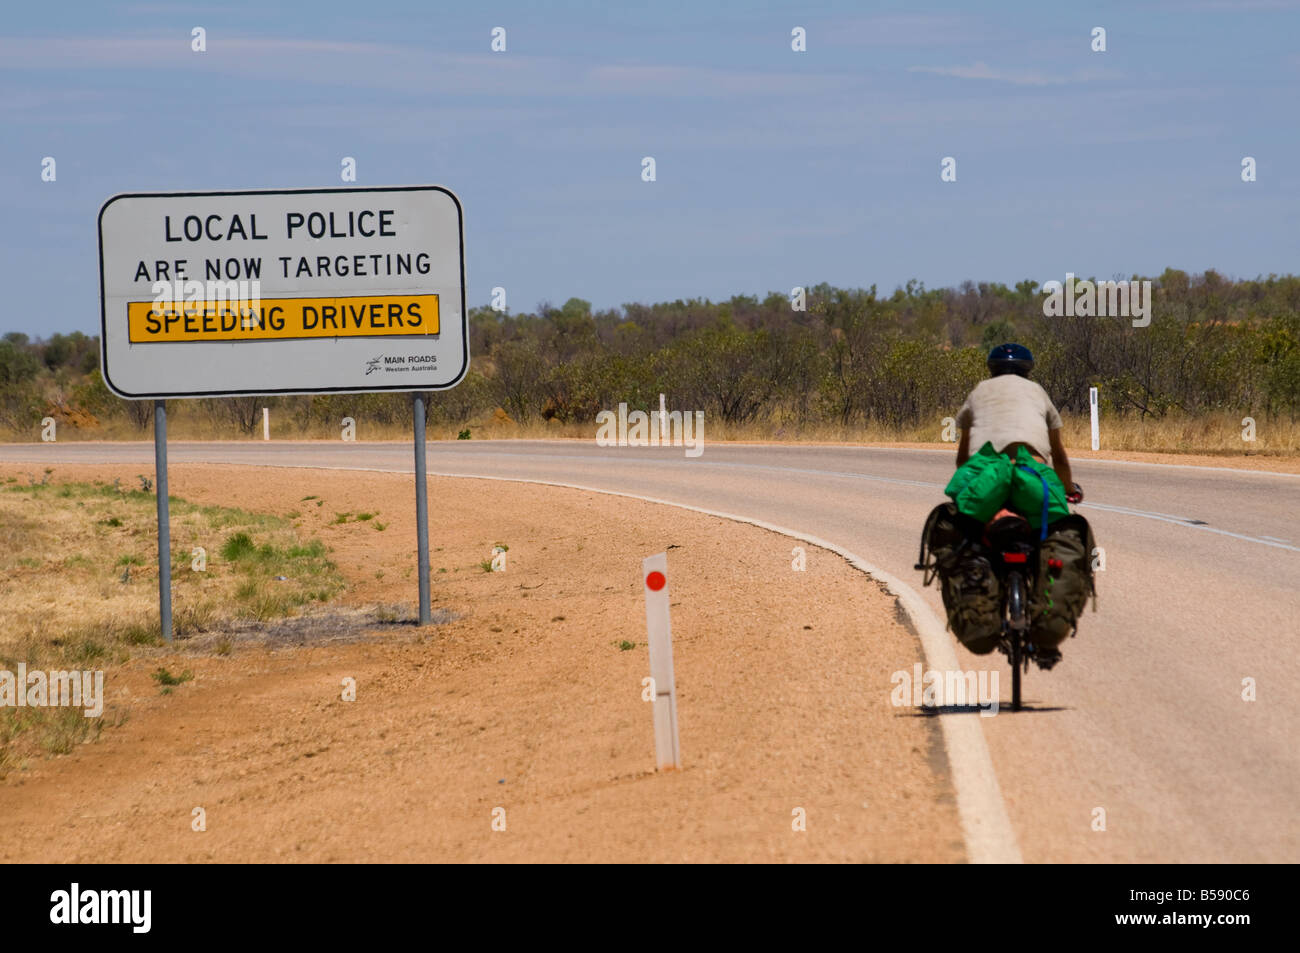 A cyclist riding outback roads in high temperatures near Fitzroy Crossing in the Kimberley region of Western Australia - Stock Image